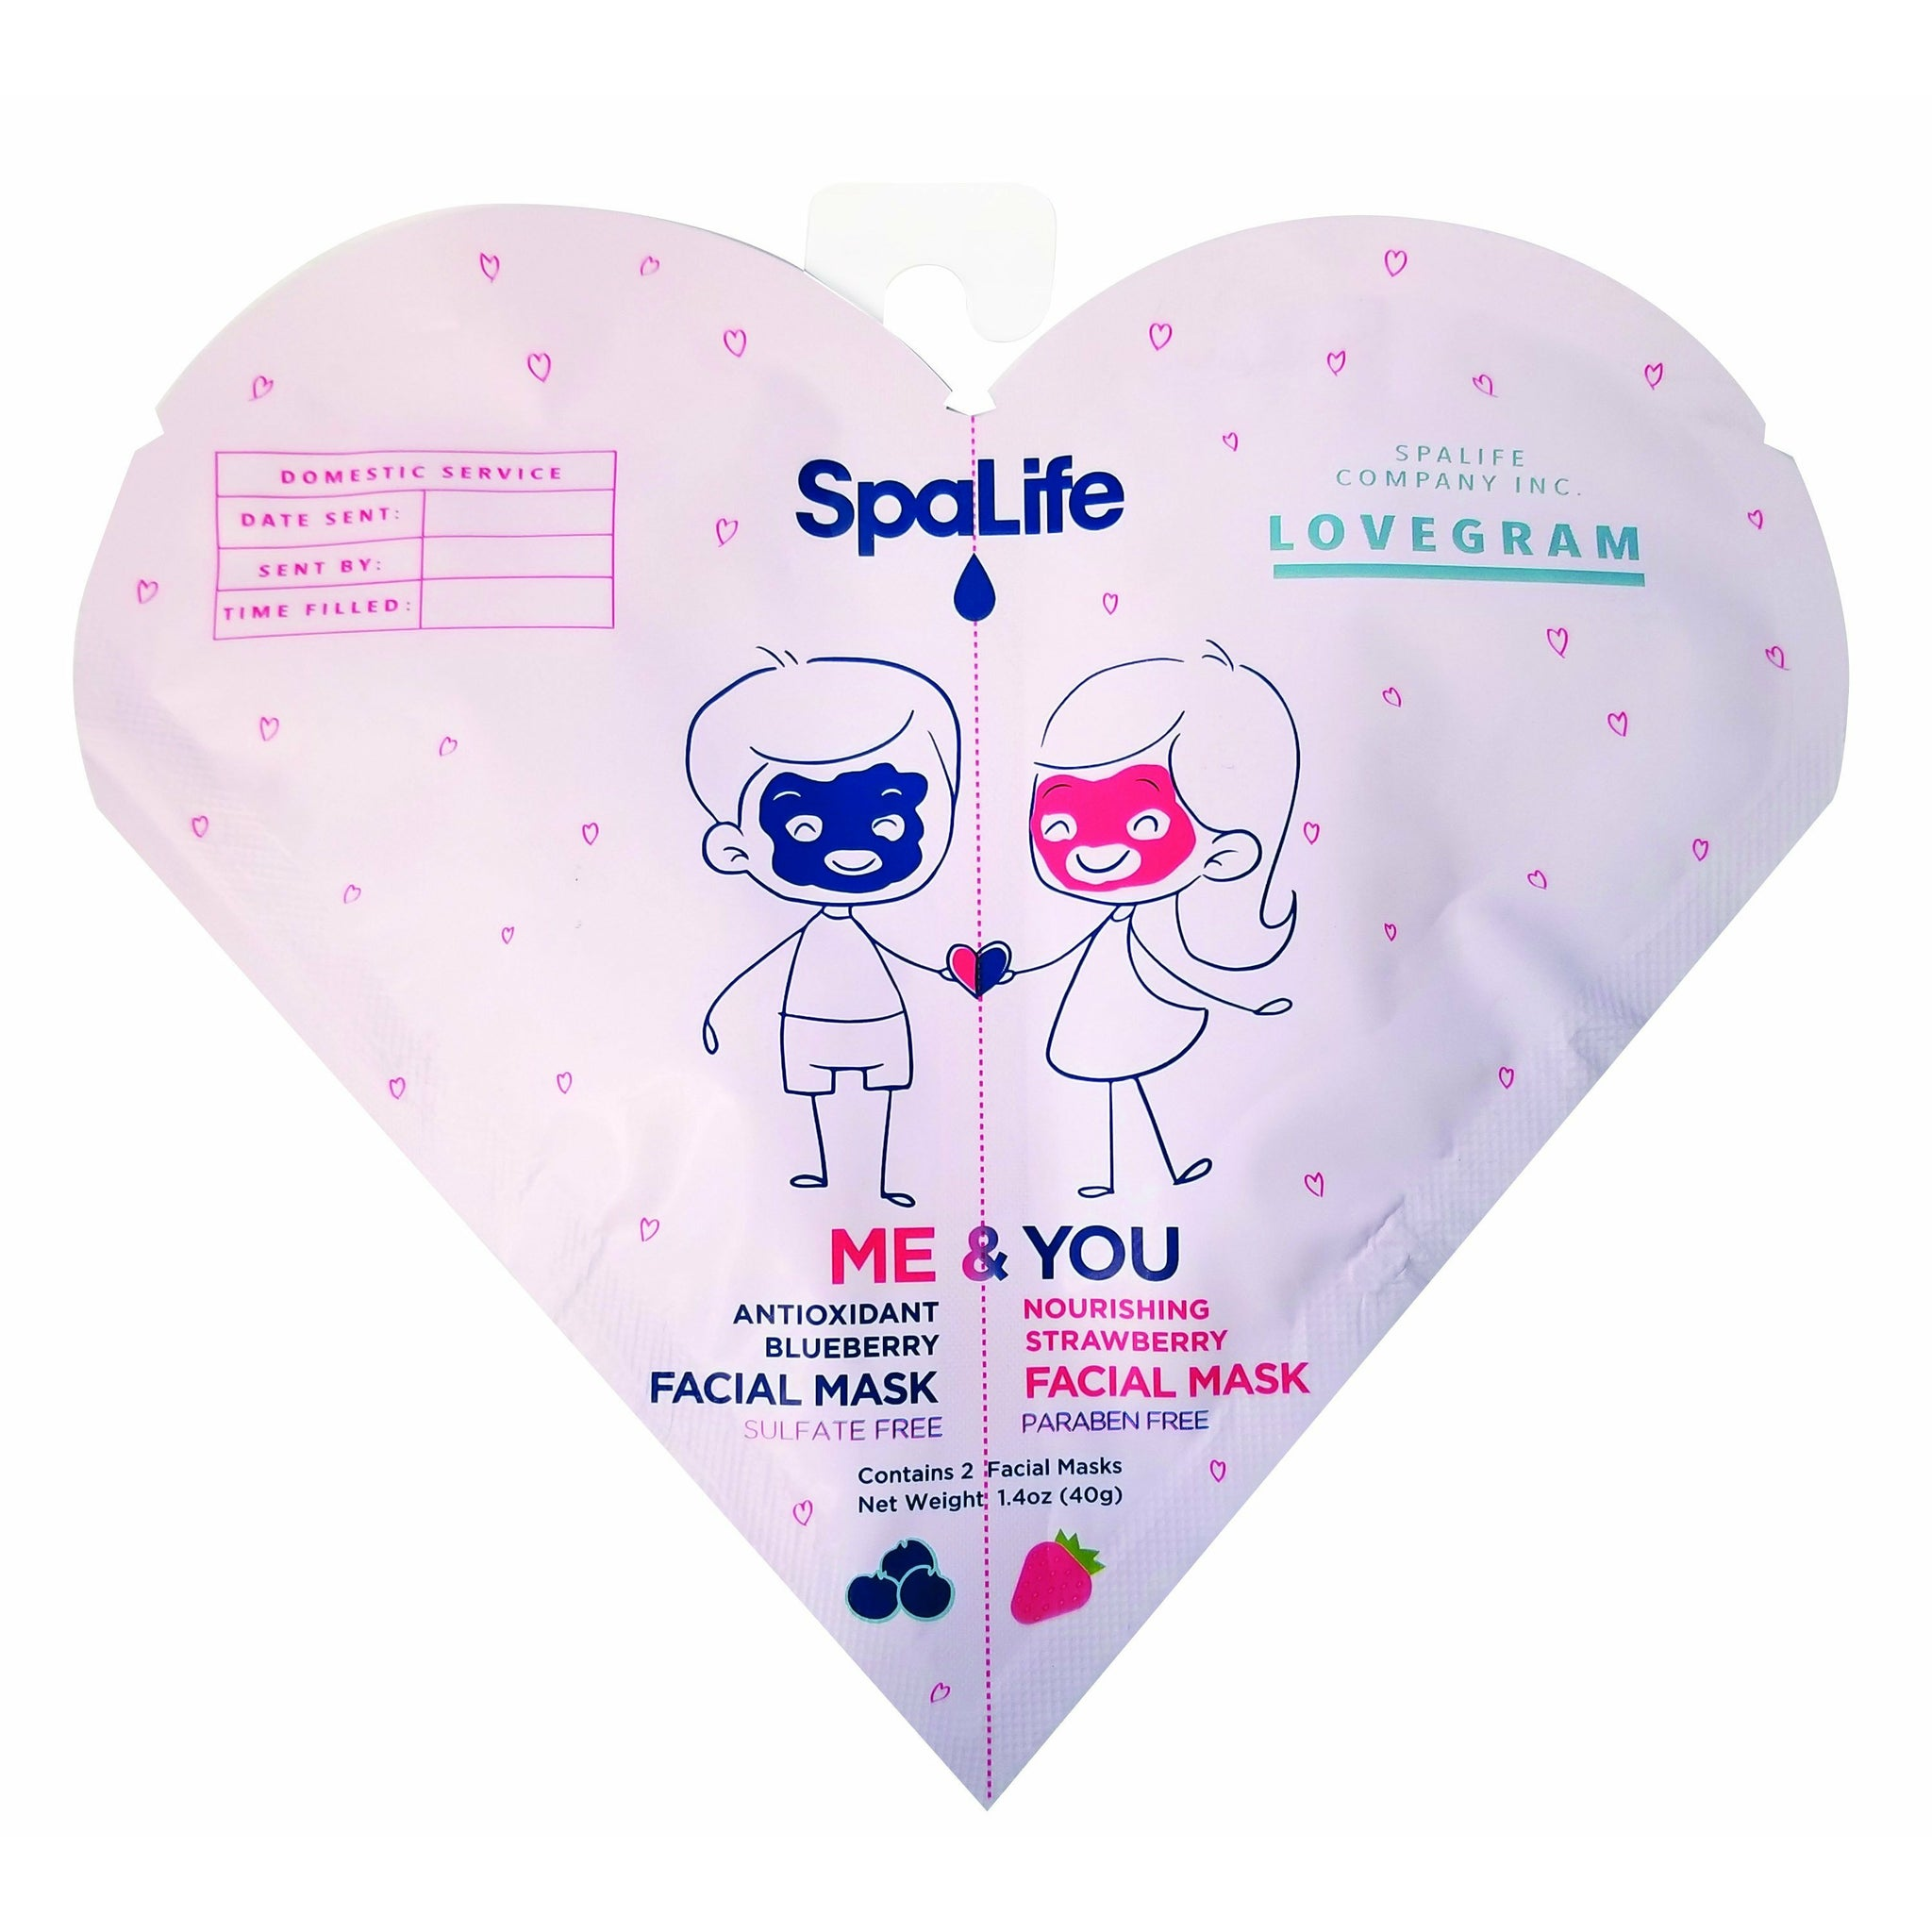 SALE - Me & You Couple's Facial Masks